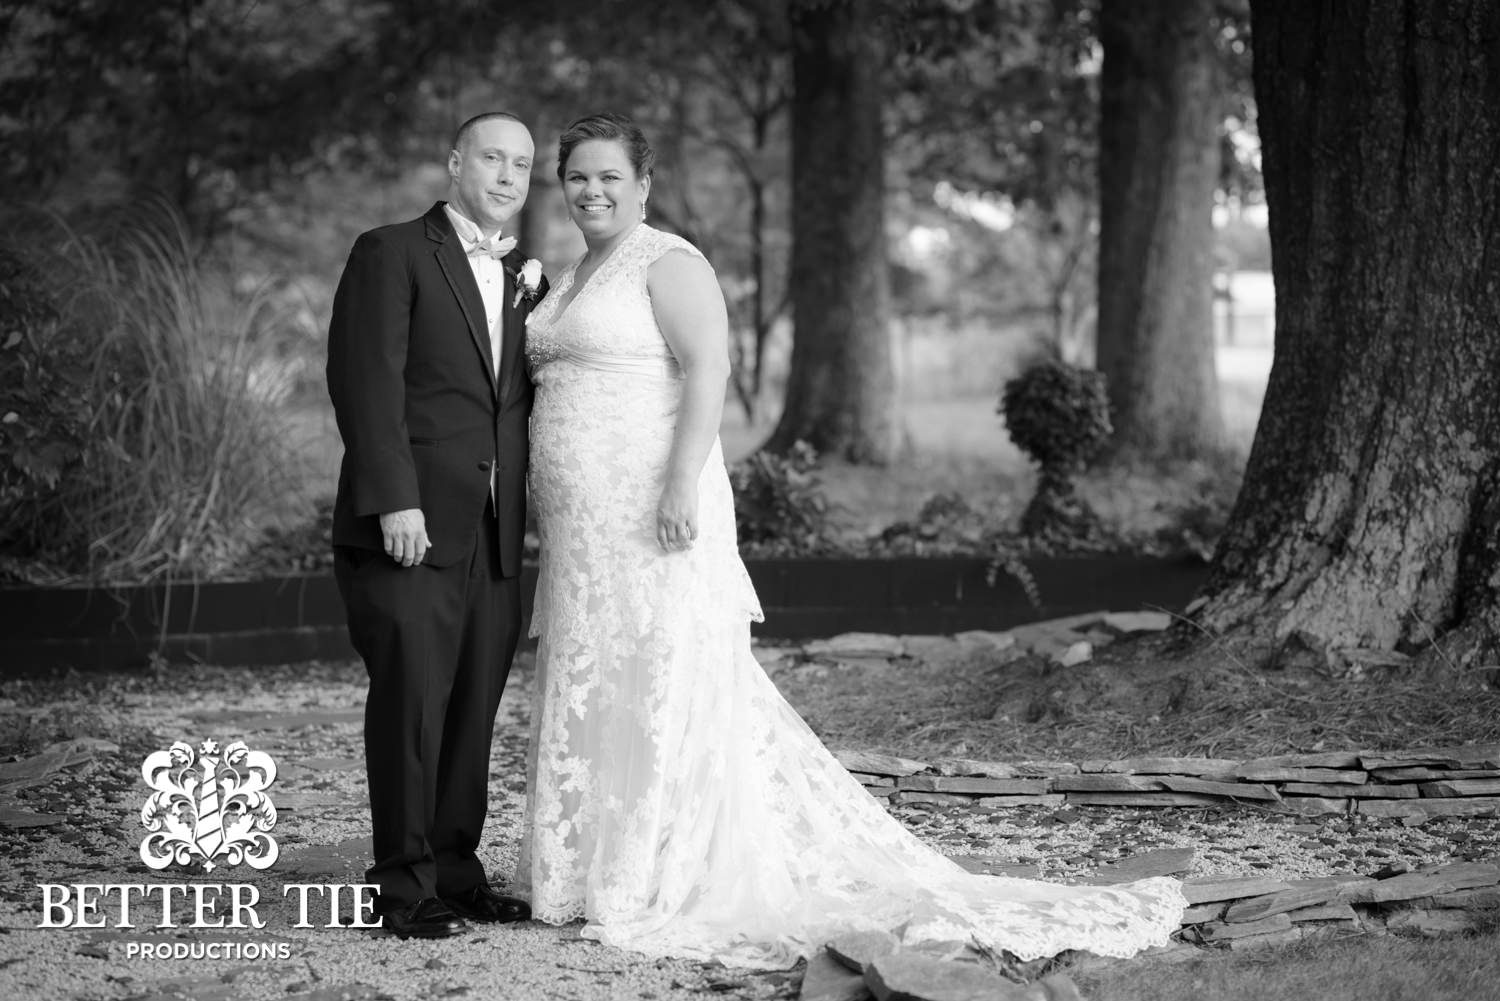 Tori + Barry | Twigs Tempietto Wedding | Better Tie Productions-80.jpg